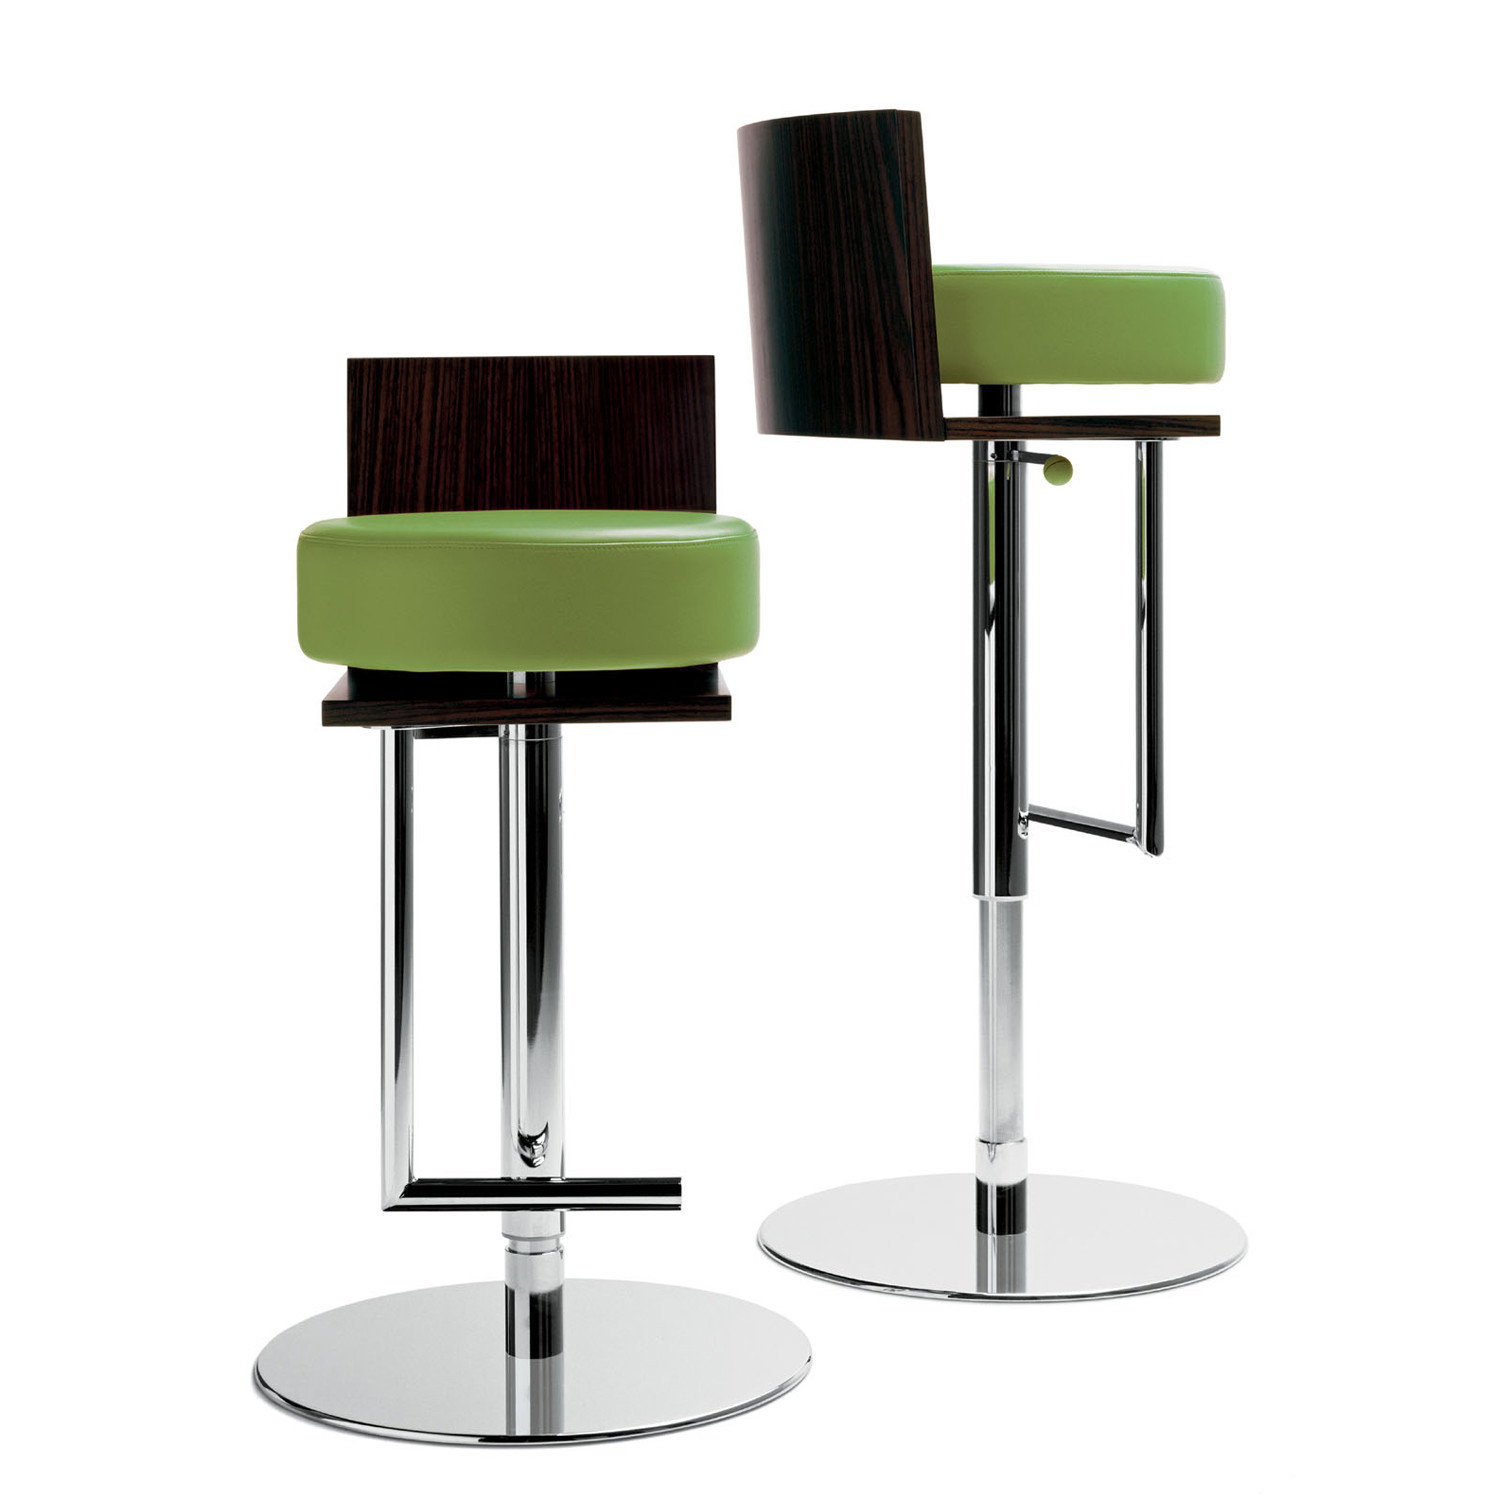 Le Spighe Rotating Bar Stools